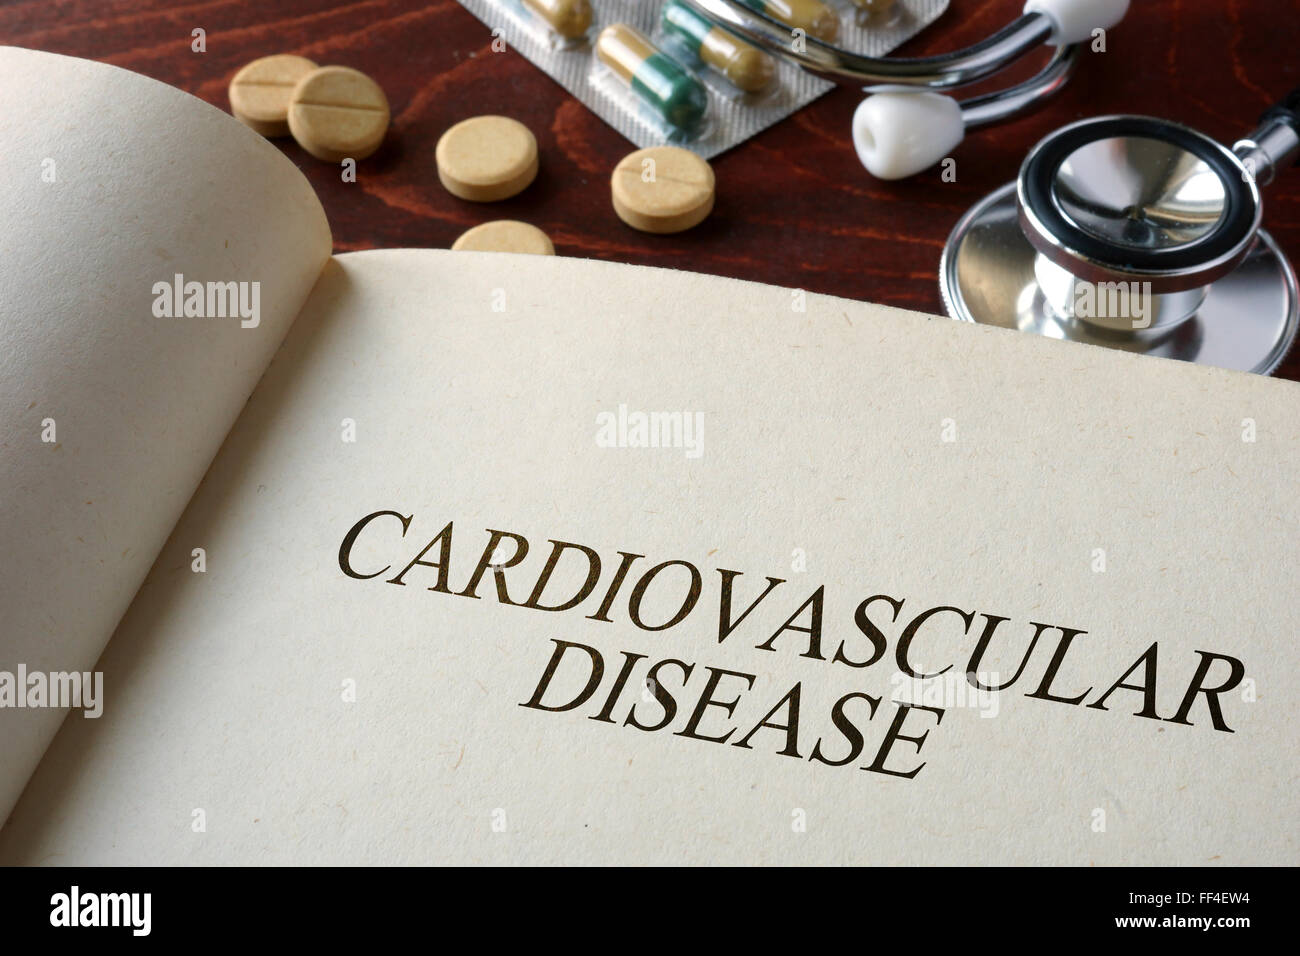 Book with diagnosis cardiovascular disease and pills. Medical concept. - Stock Image